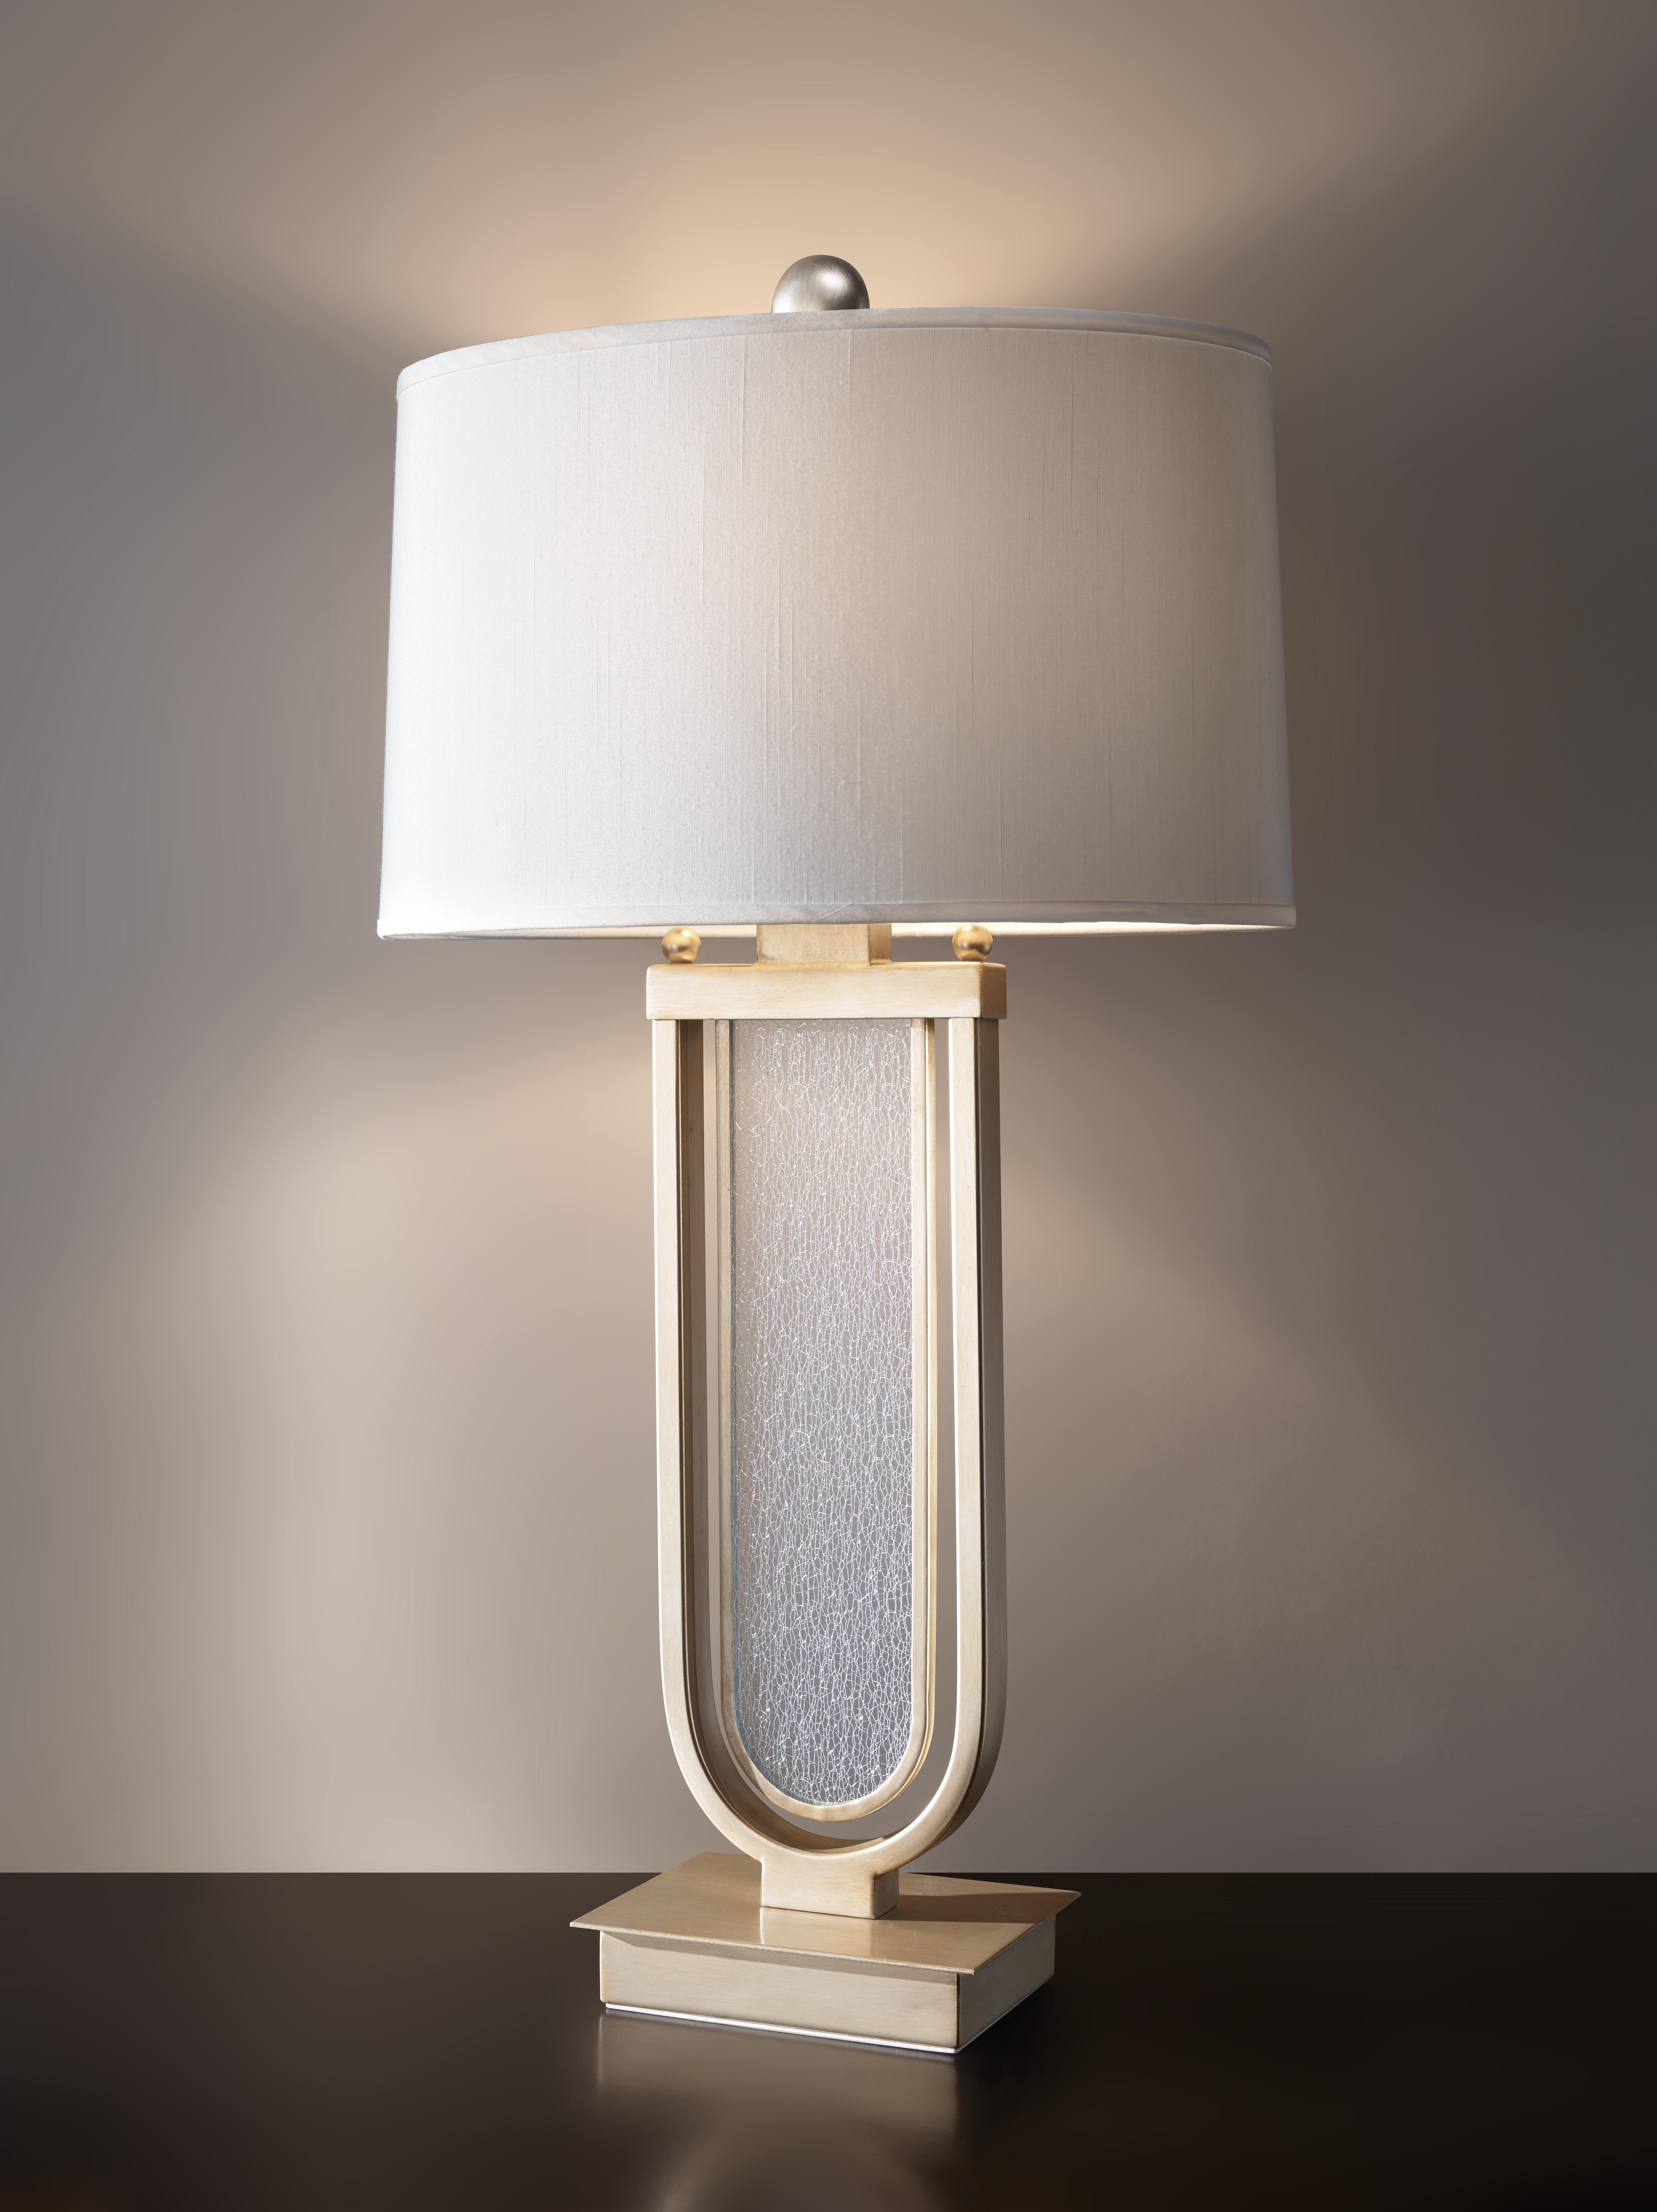 Feiss To Debut New Lamps And Mirrors At Spring High Point